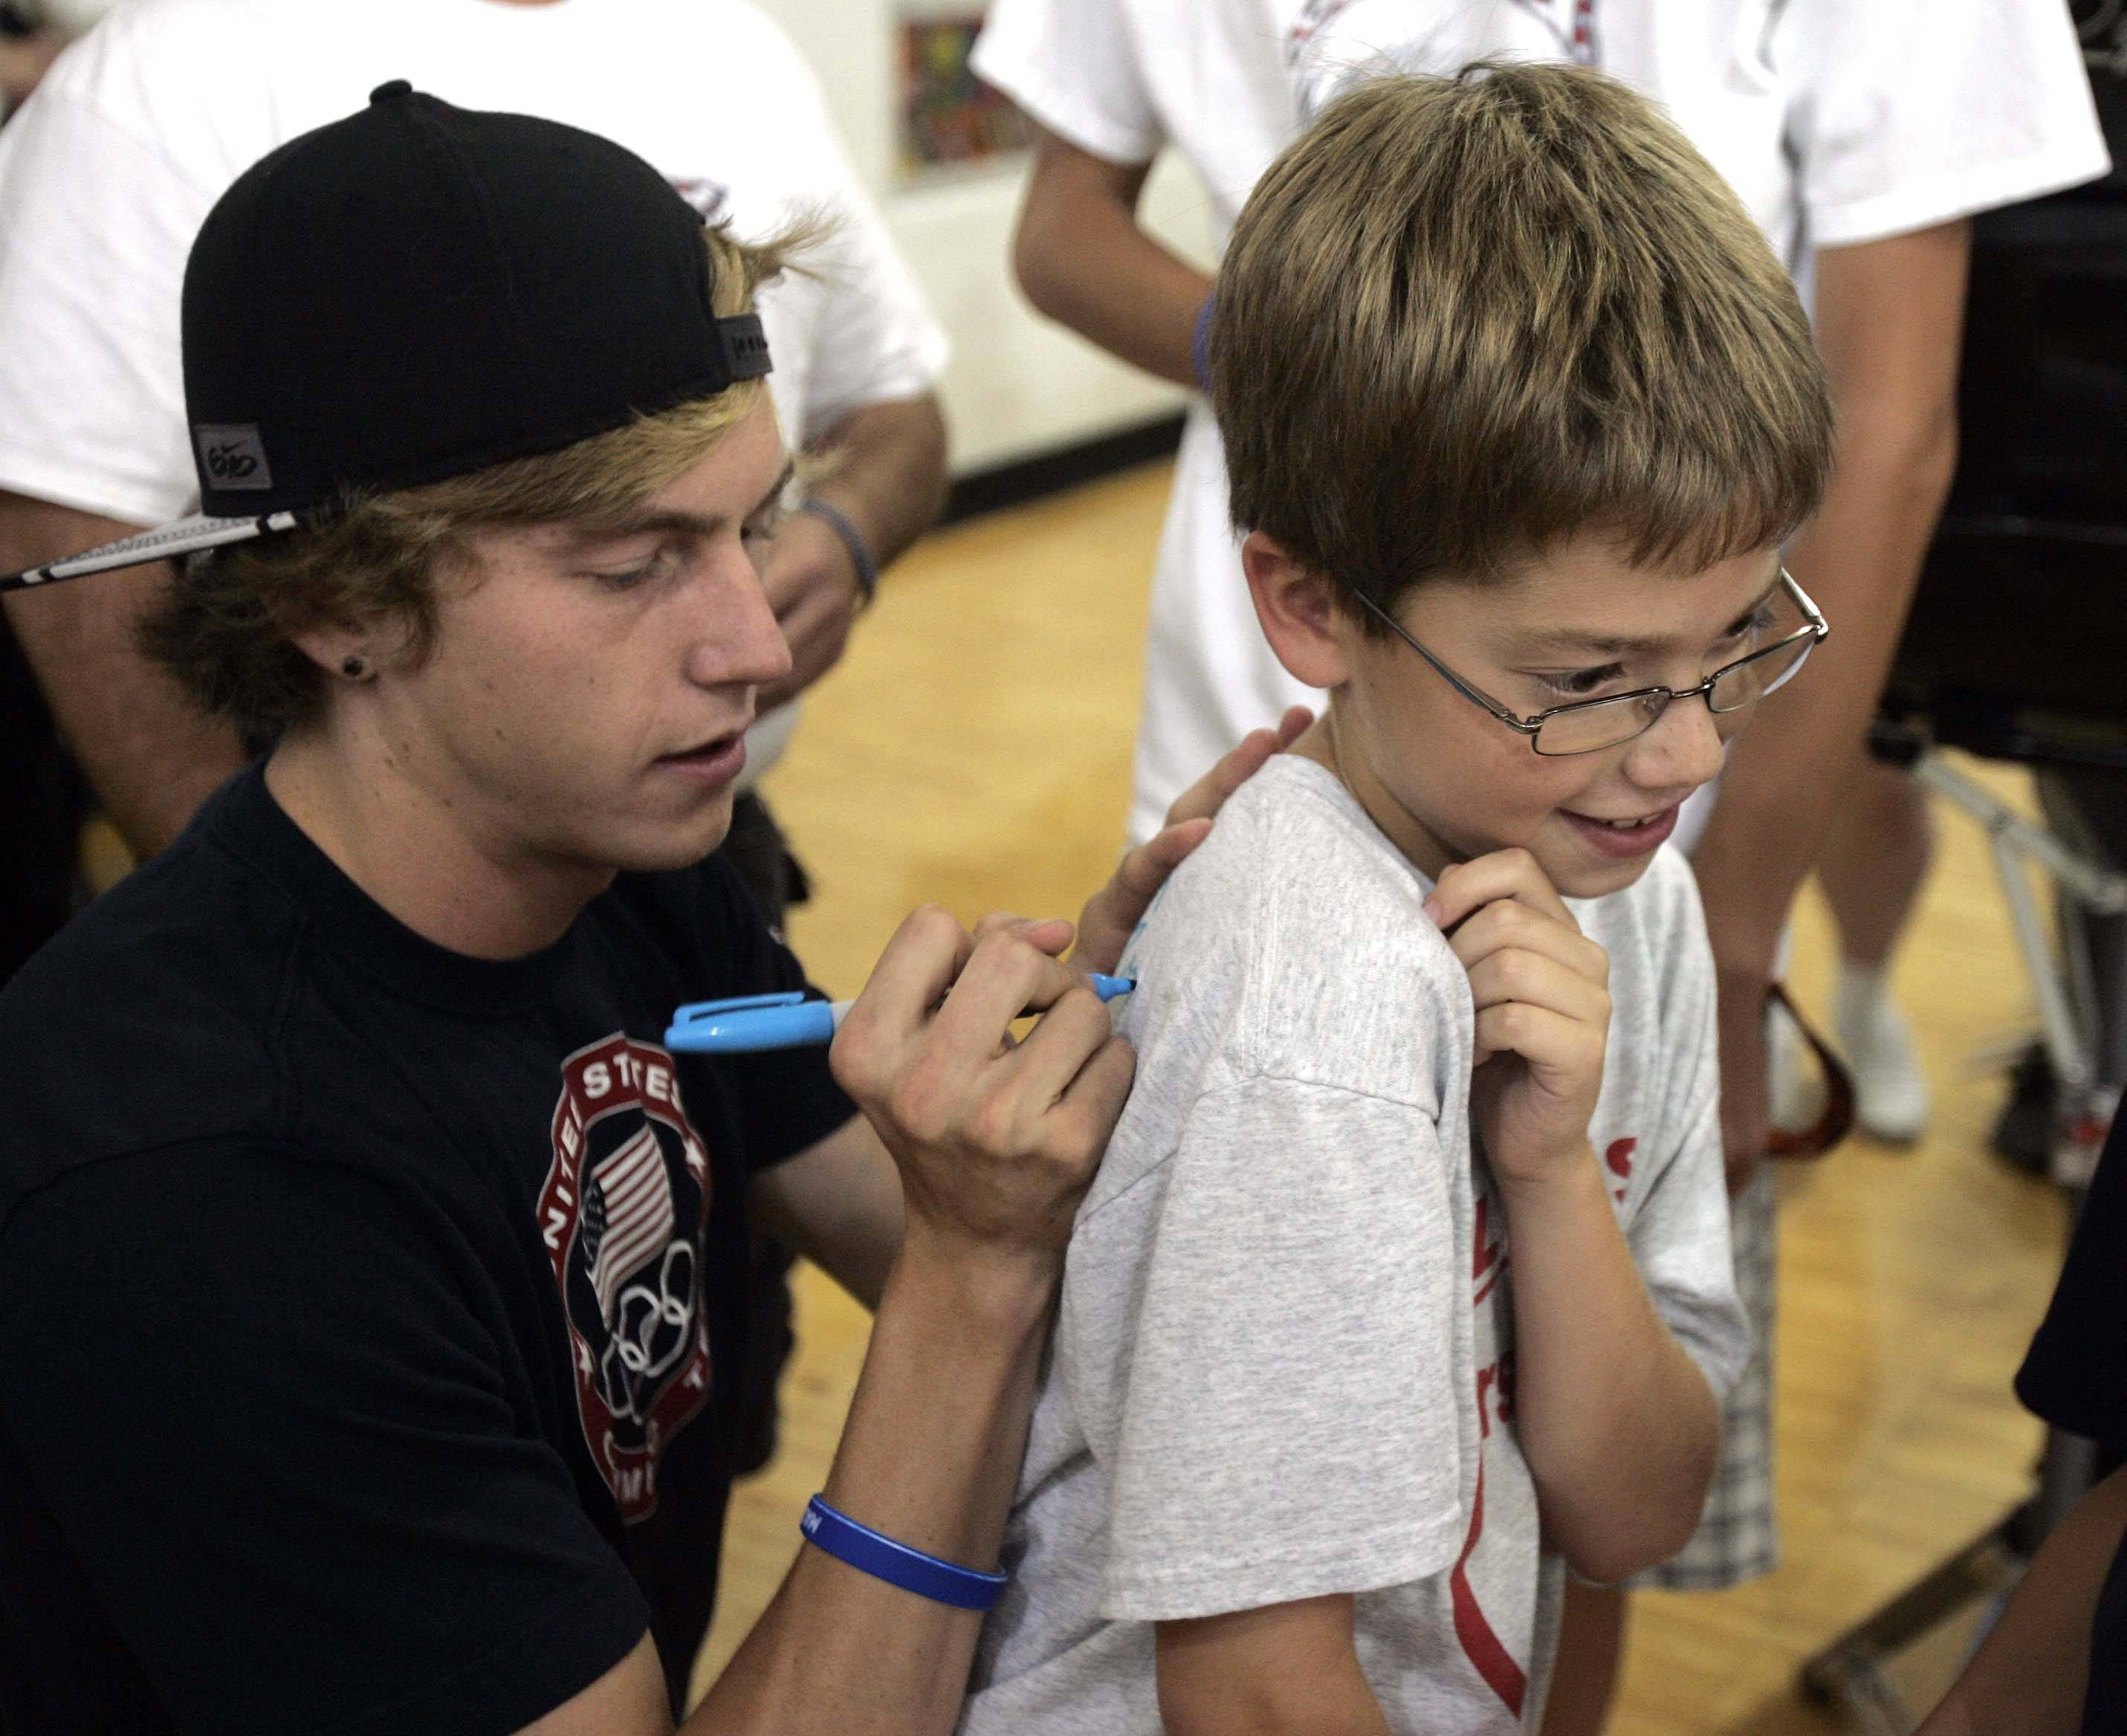 Nine-year-old Logan Marx of Algonquin gets his shirt signed by olympian Evan Jager who returned to H.D. Jacobs High School in Algonquin Wednesday.